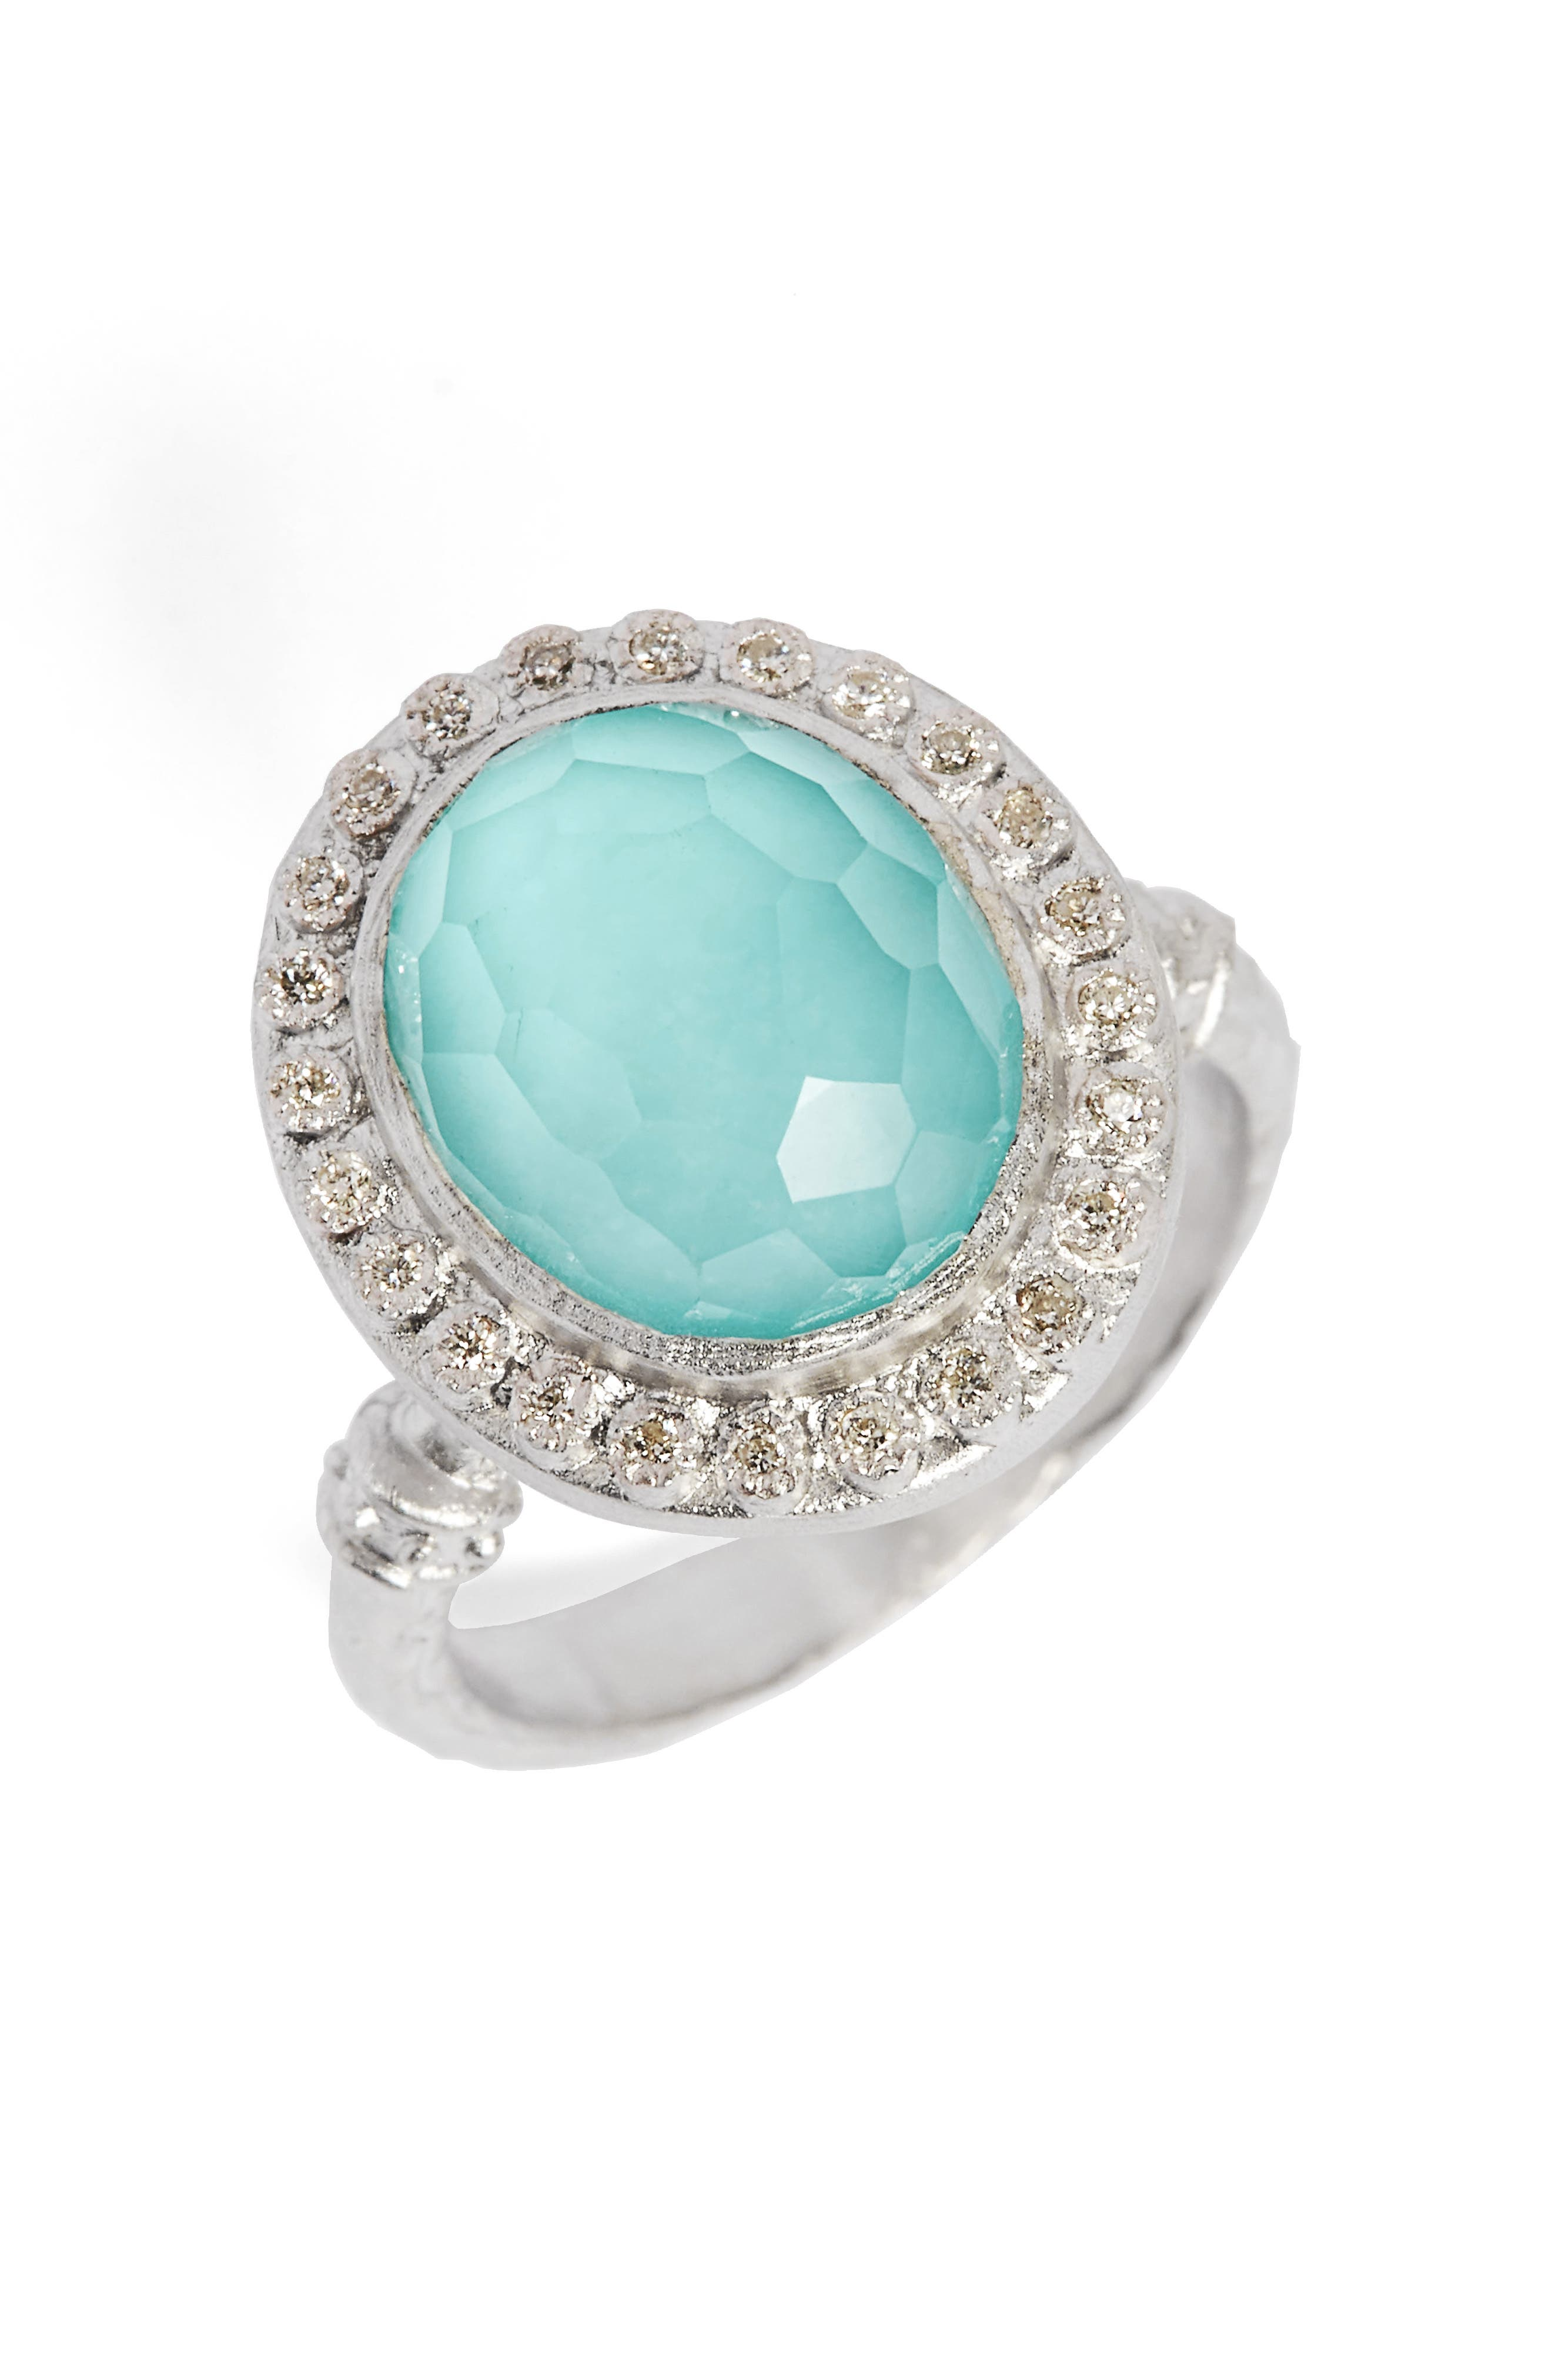 Main Image - Armenta New World Diamond & Turquoise Ring